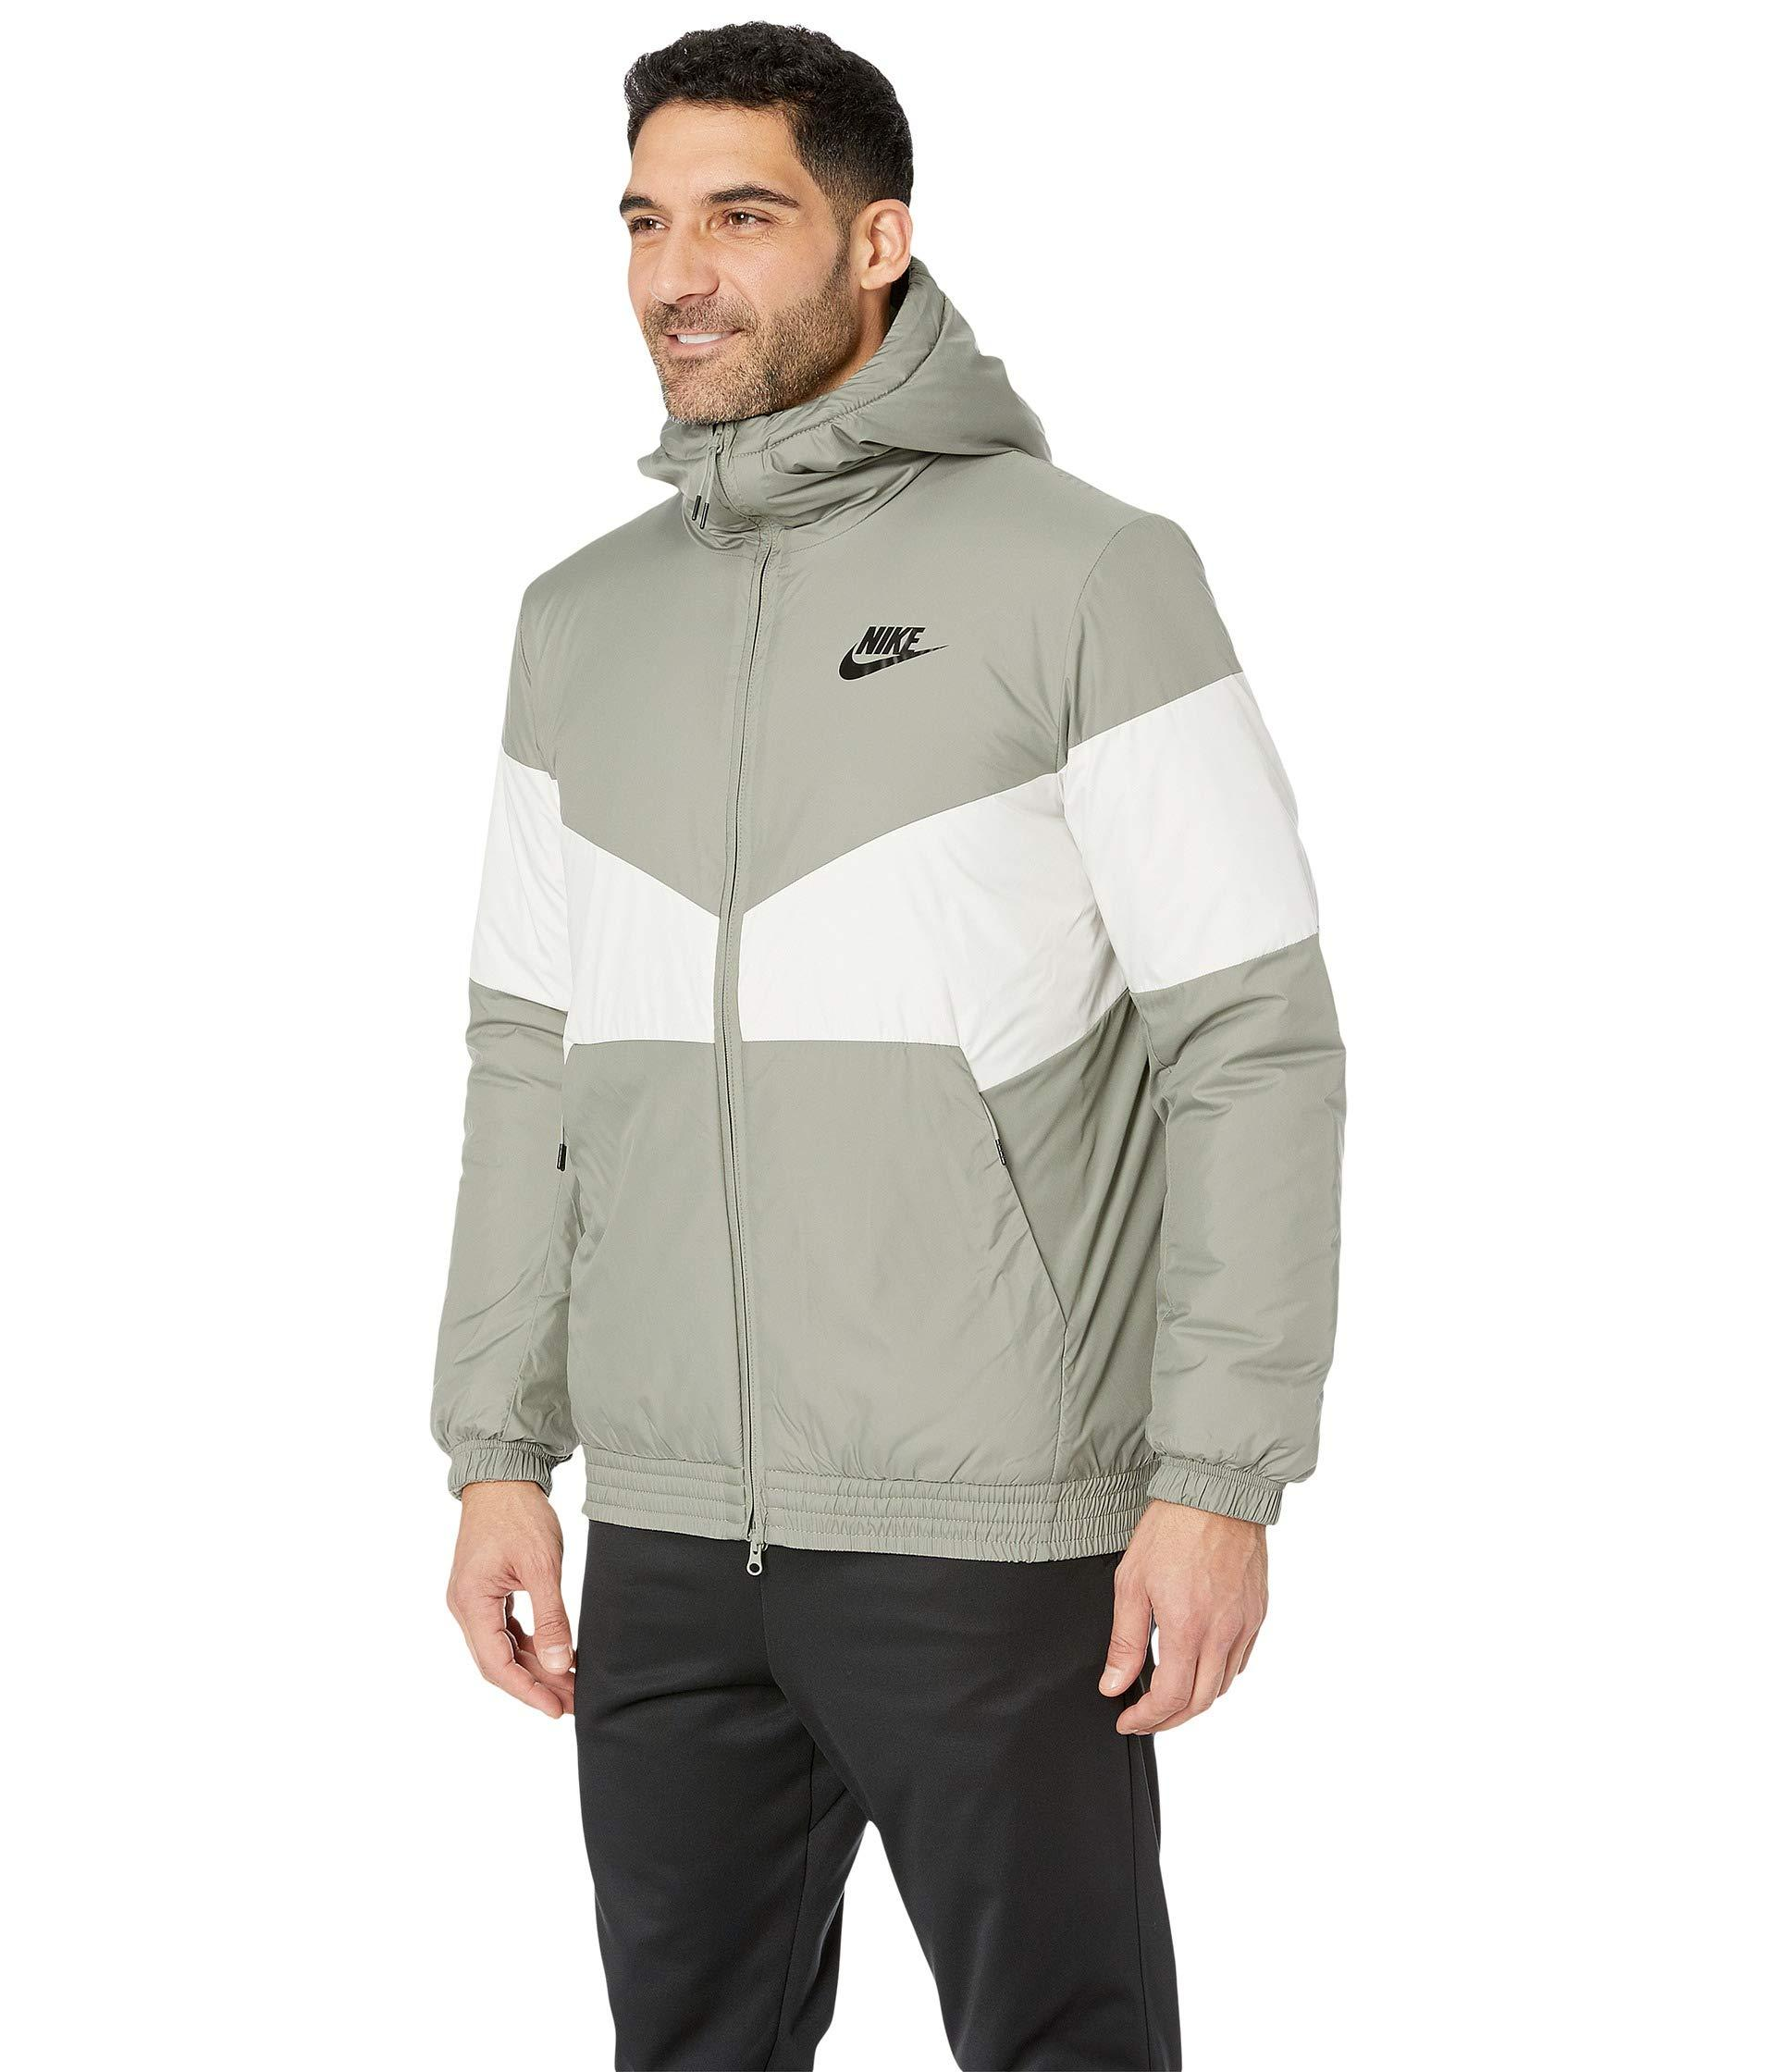 0098b85e4 Nike Nsw Synthetic Fill Jacket Hoodie in Gray for Men - Lyst